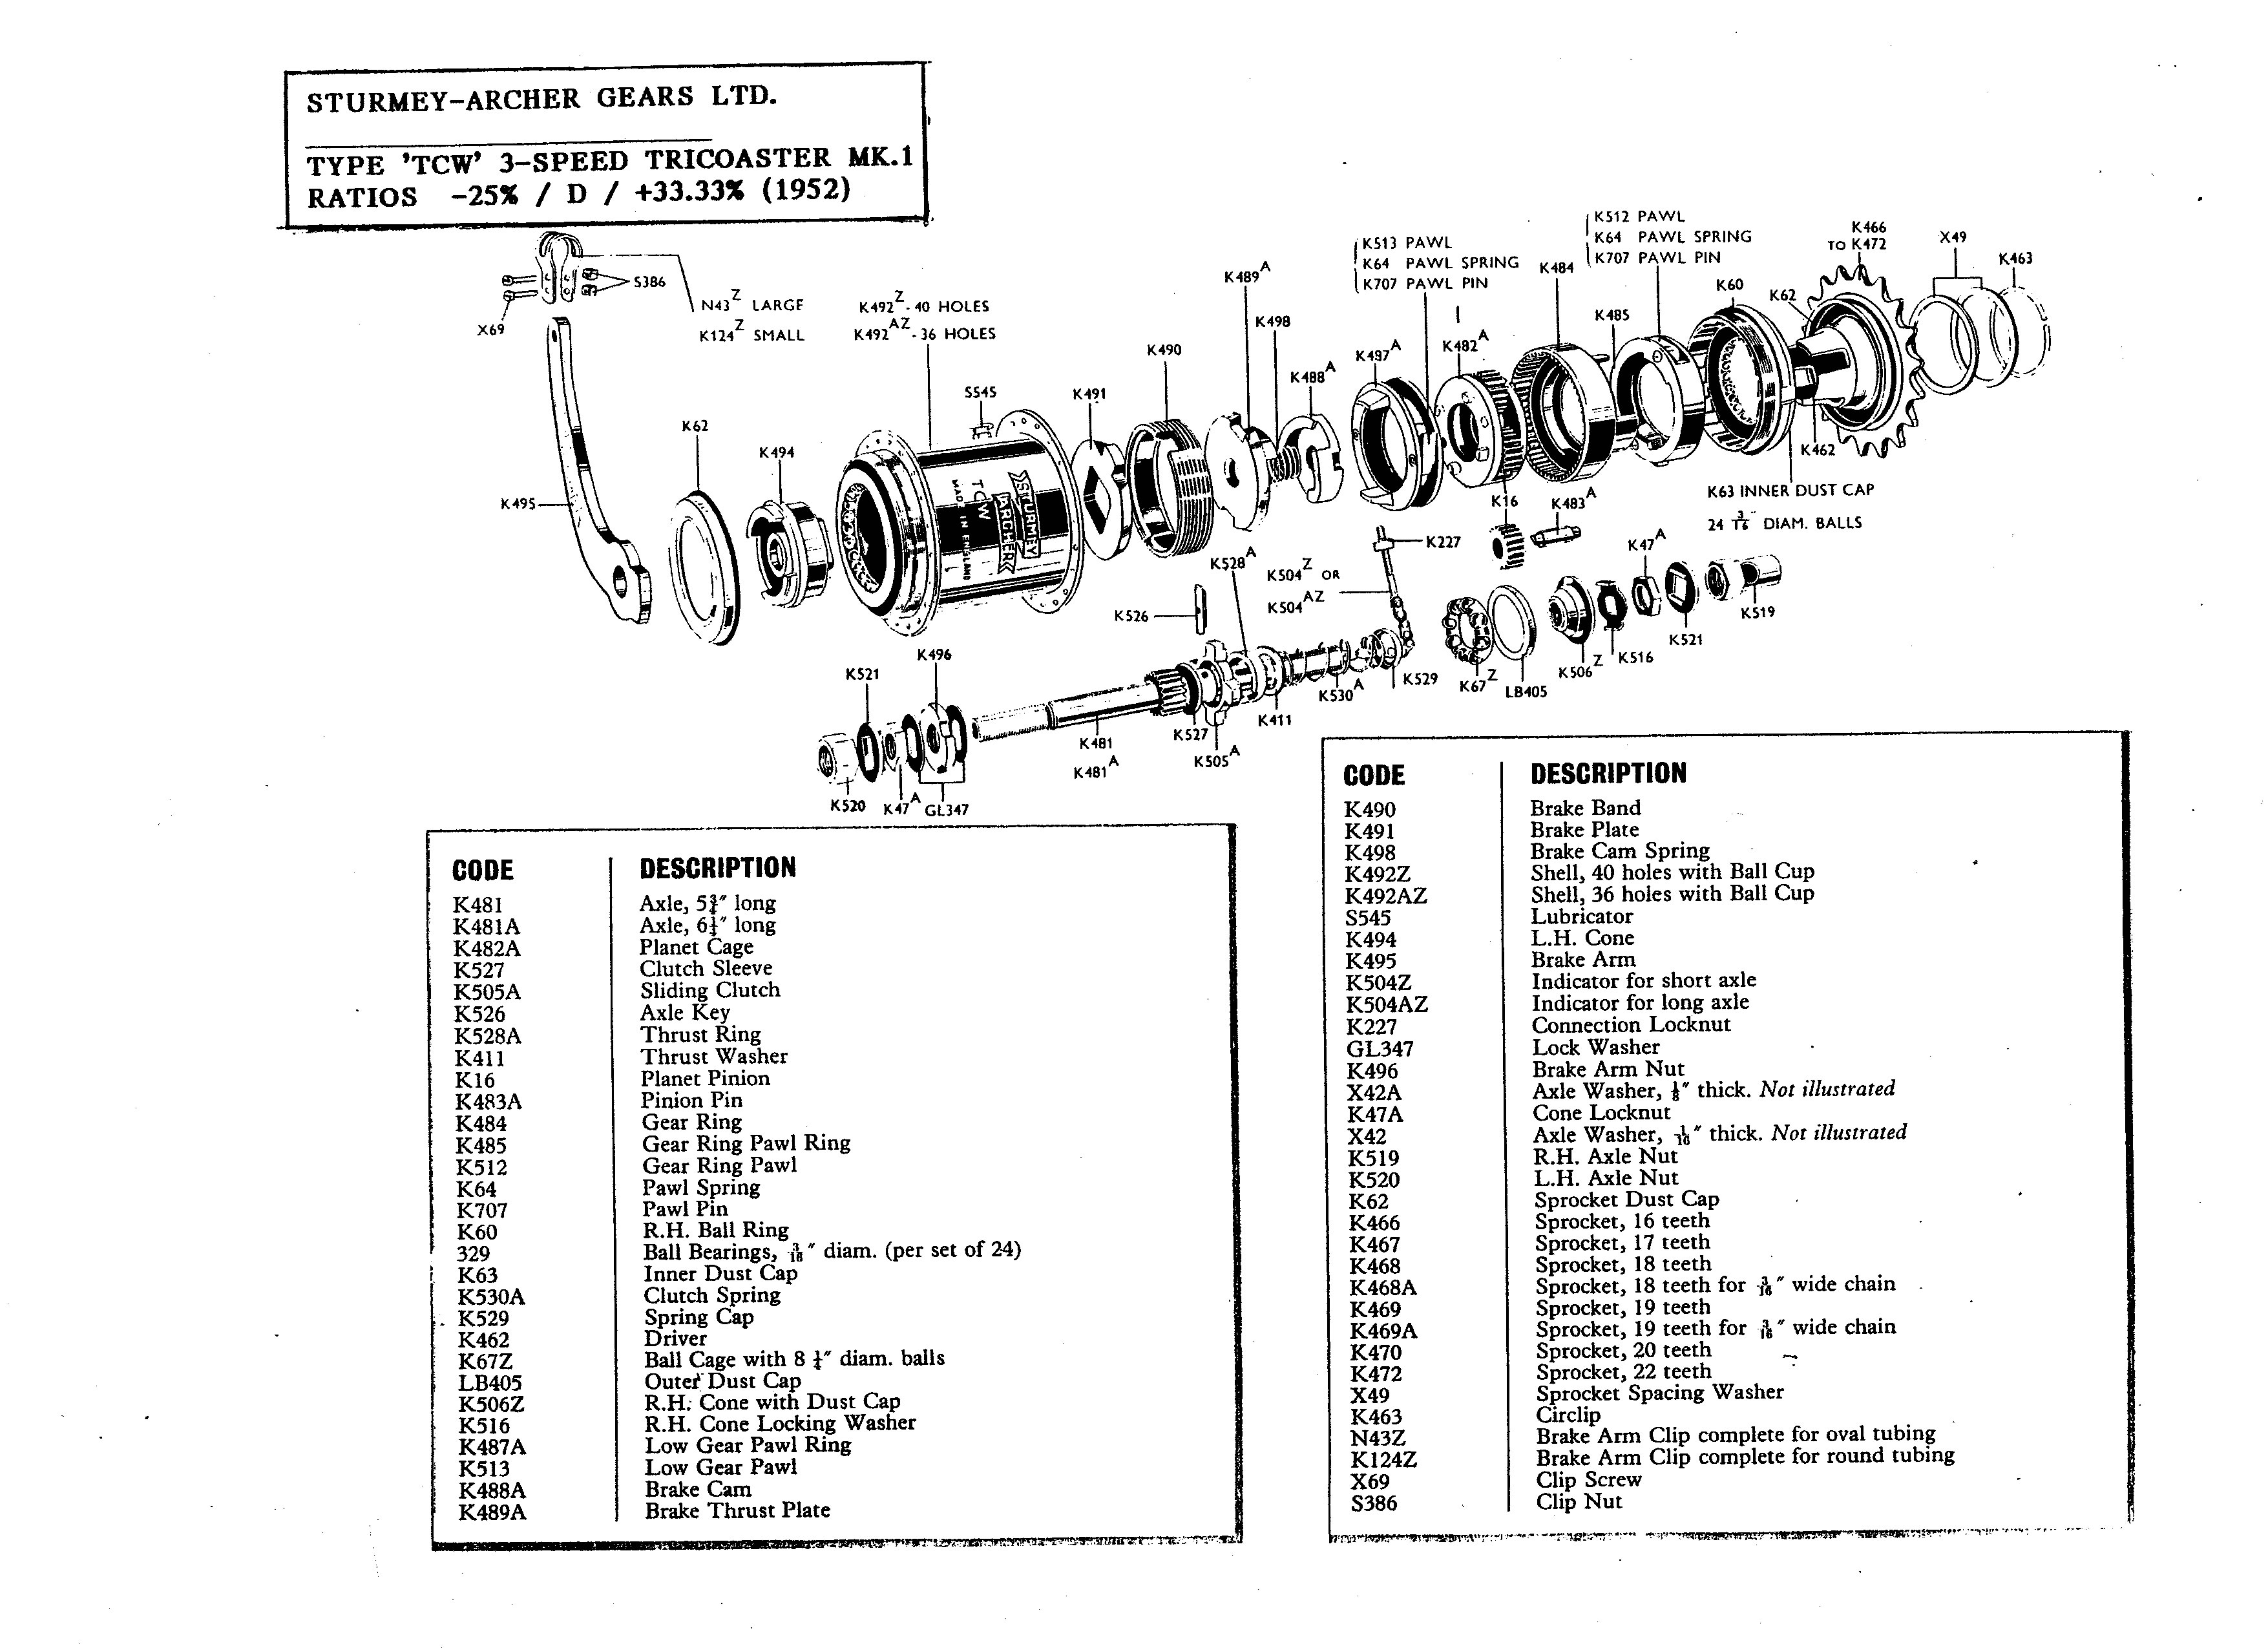 Servicing Sturmey Archer 3 Speed Hubs Brief History Exploded Part Diagrams 28 Parts 2 Pages Disassembly Another Source